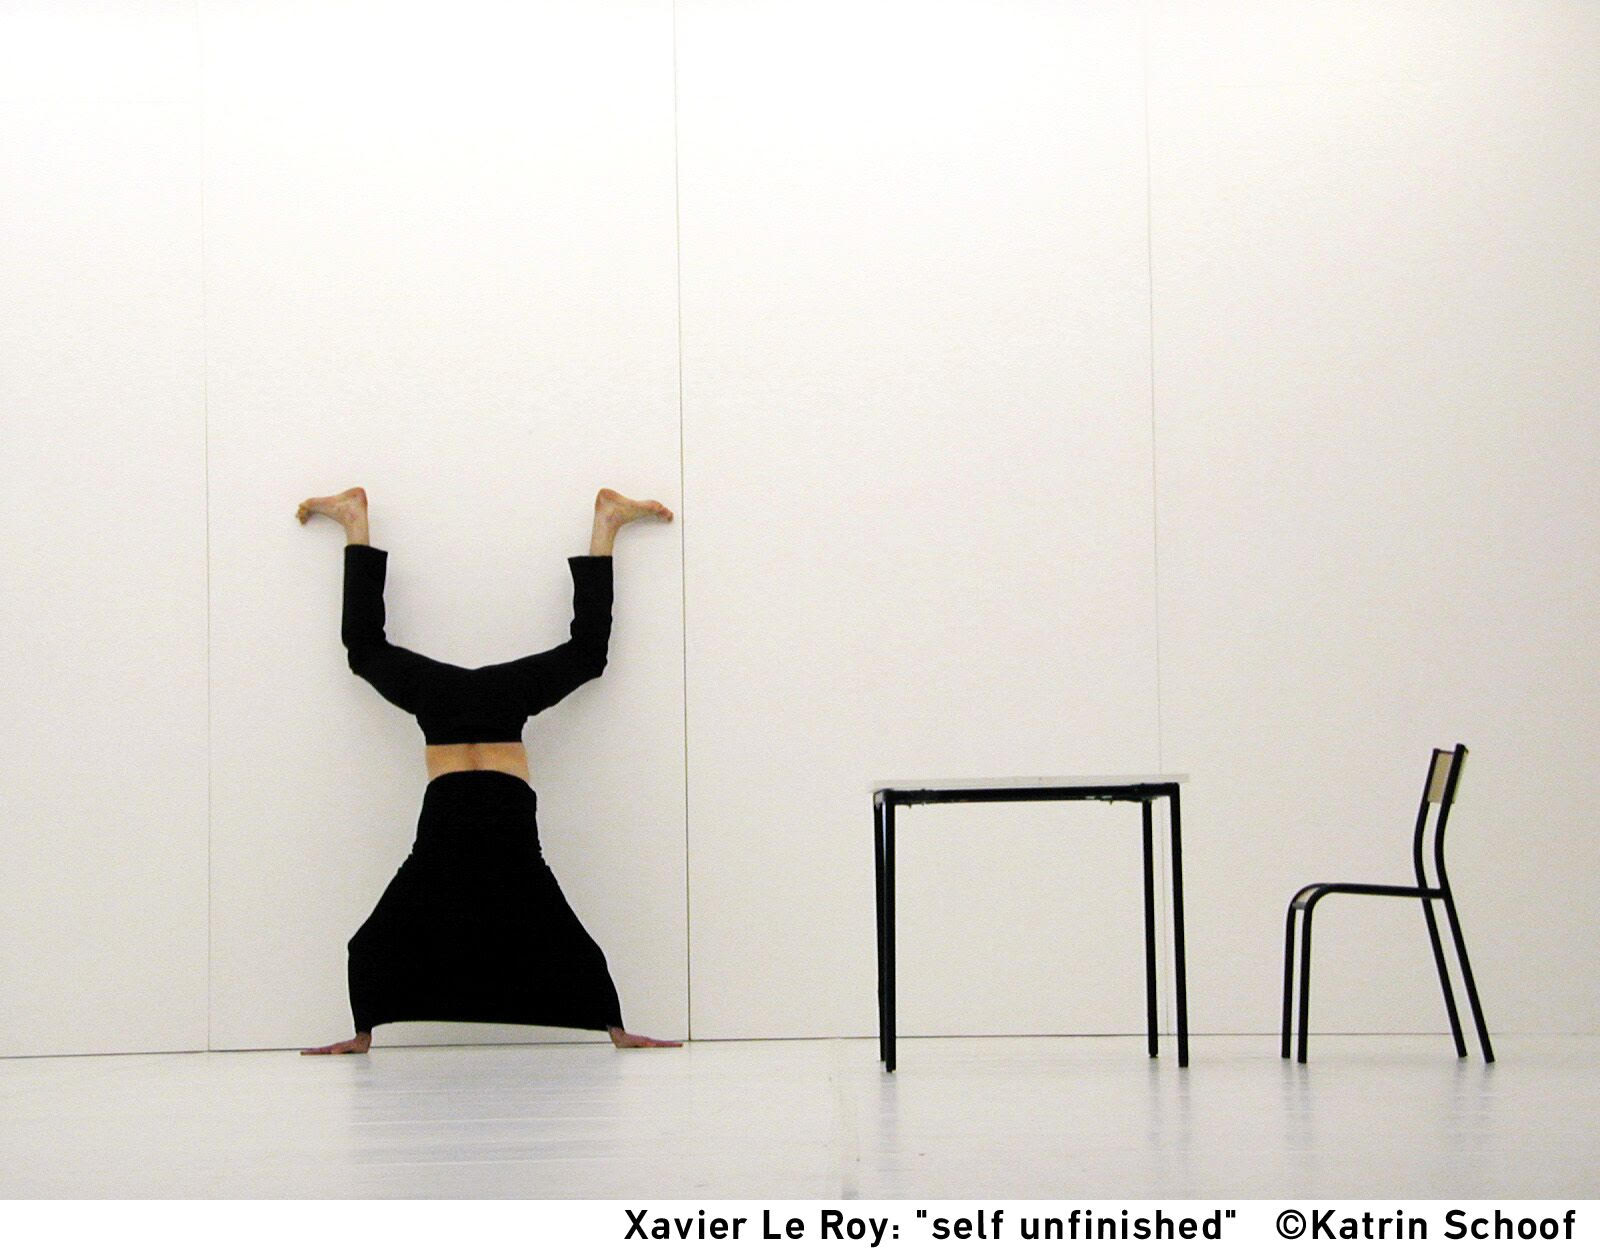 Xavier Le Roy: Self unfinished